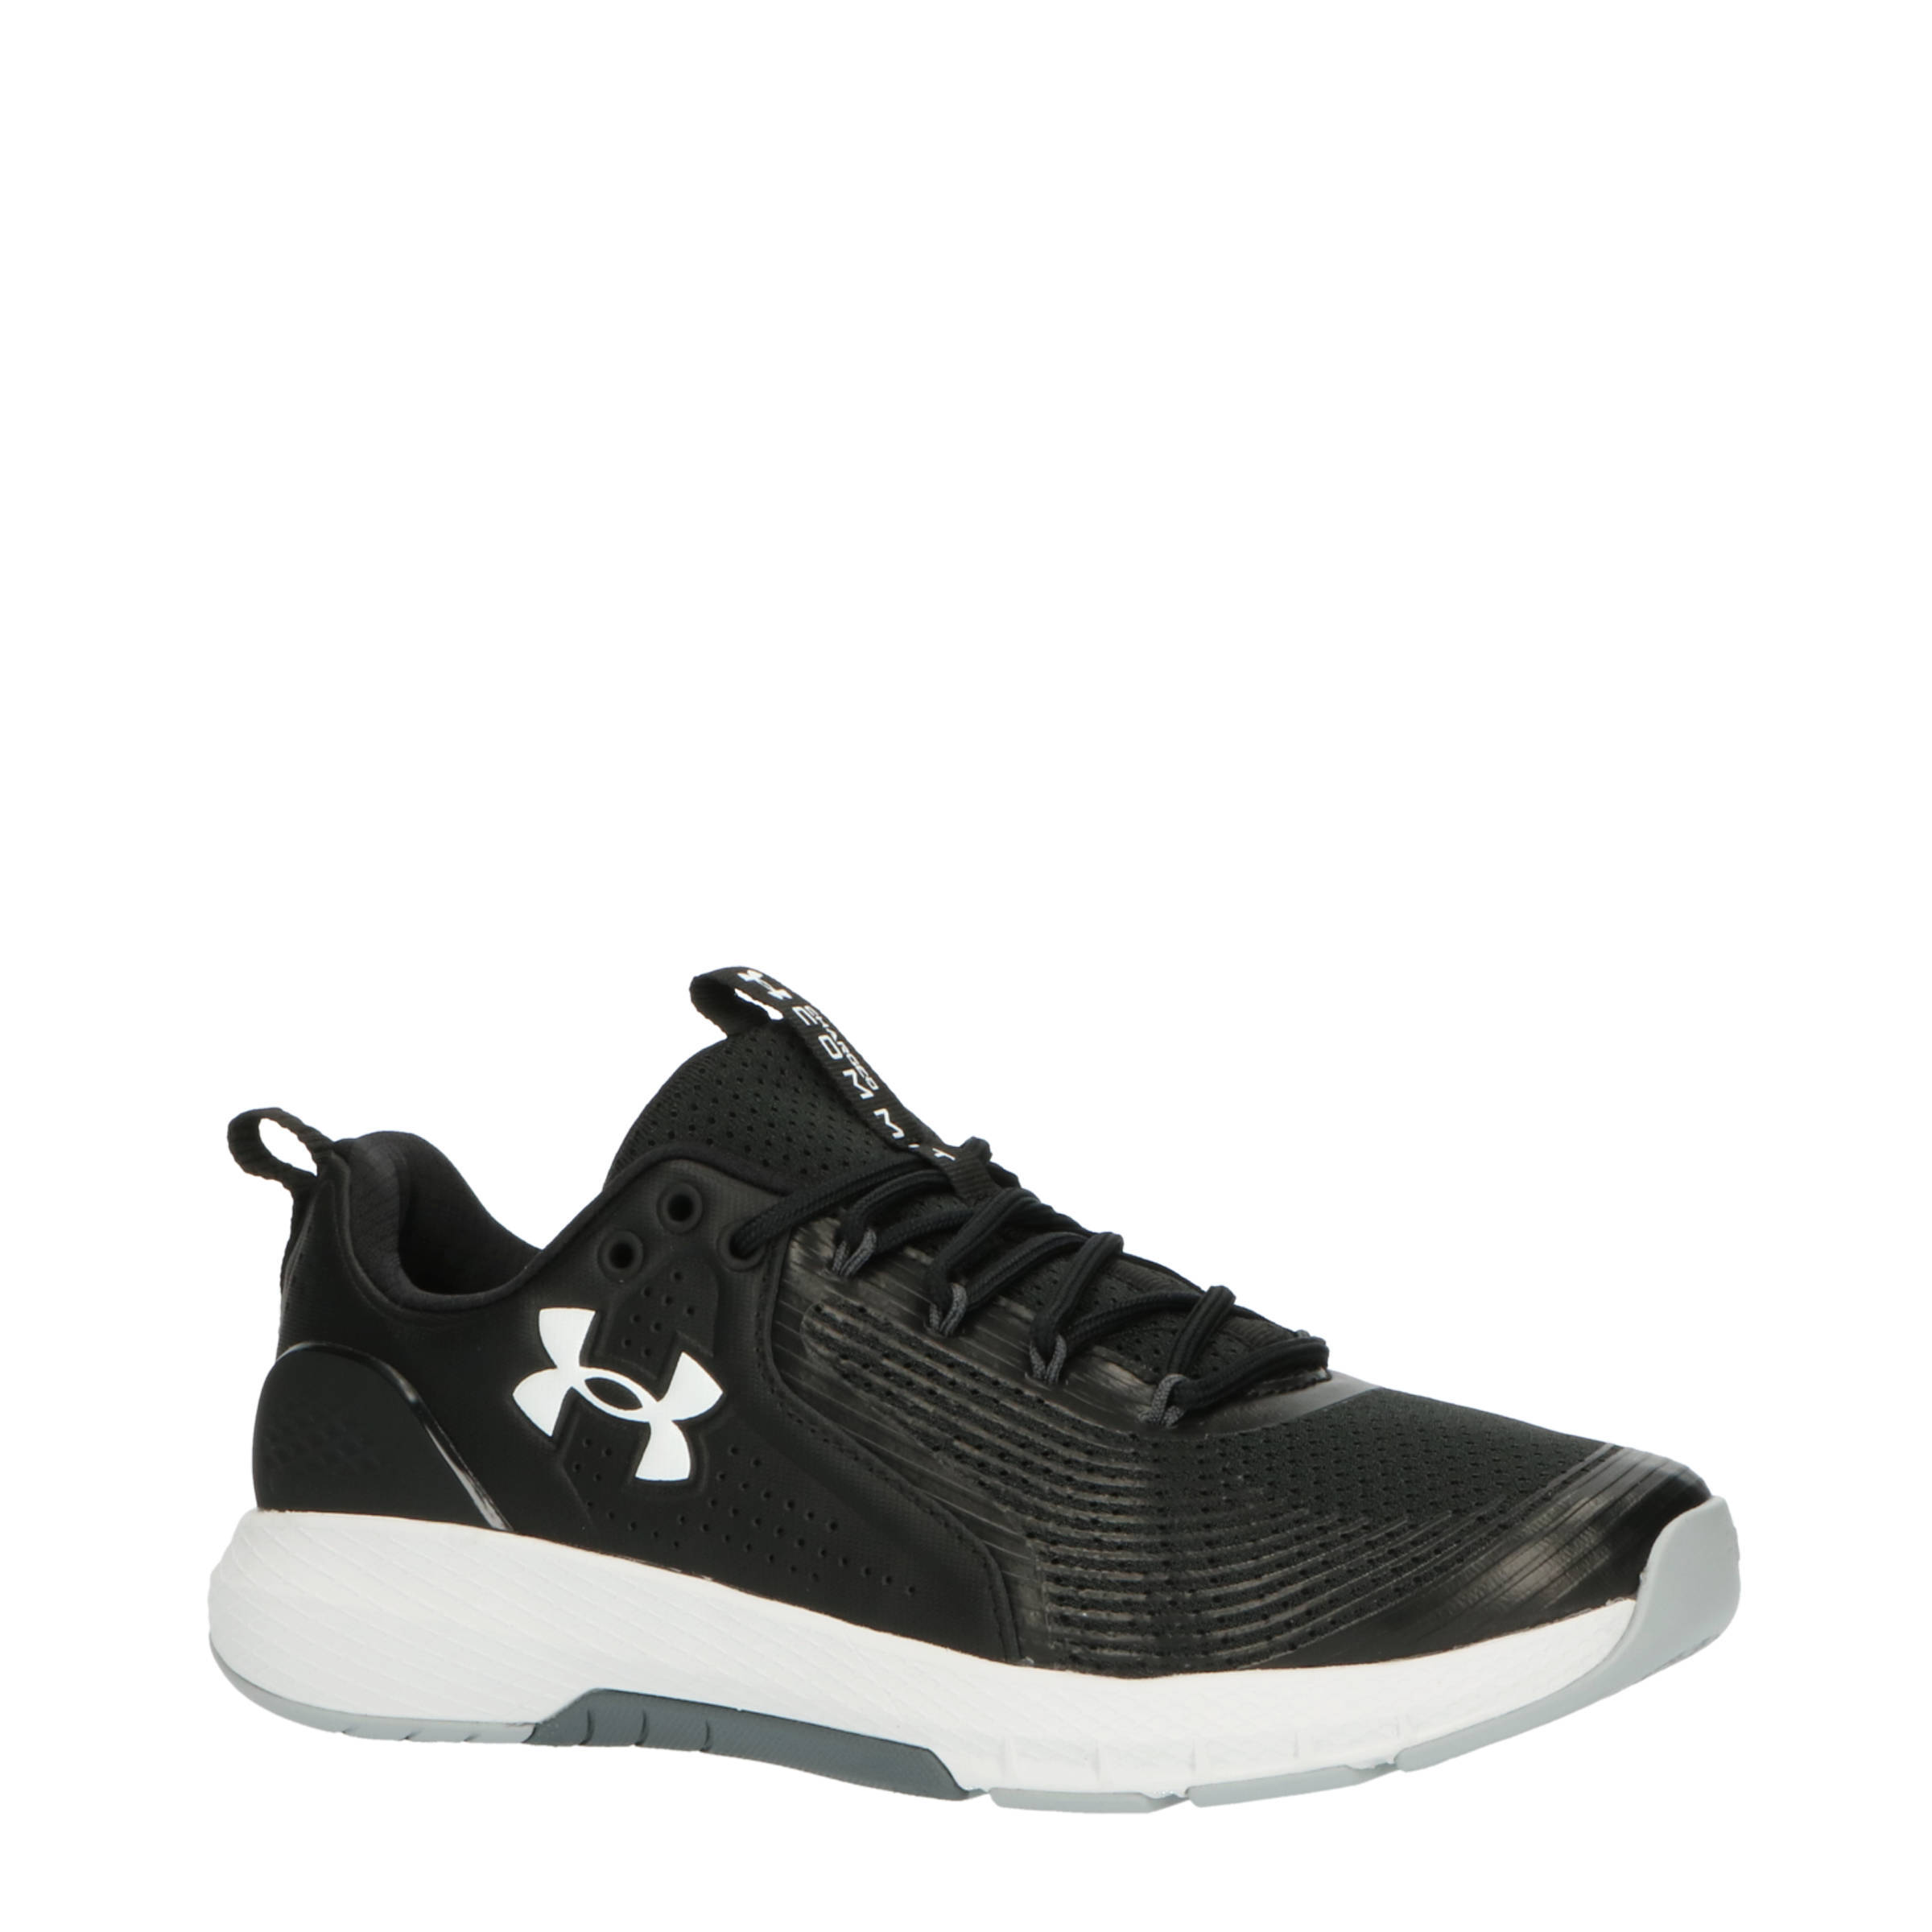 Under Armour Ua charged commit tr 3 3023703-001 online kopen